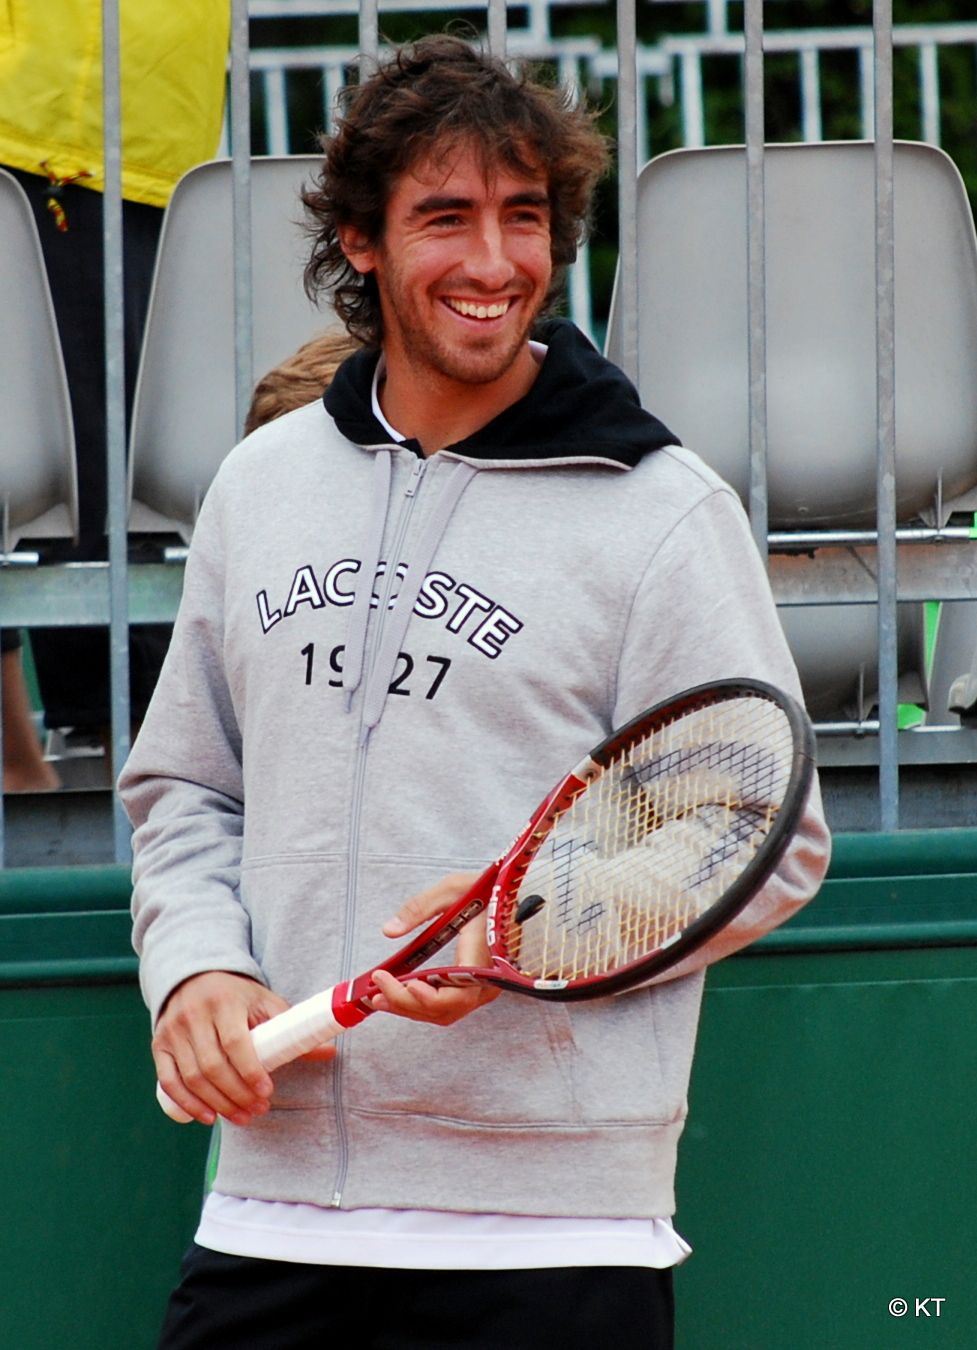 http://upload.wikimedia.org/wikipedia/commons/9/92/Pablo_Cuevas.jpg